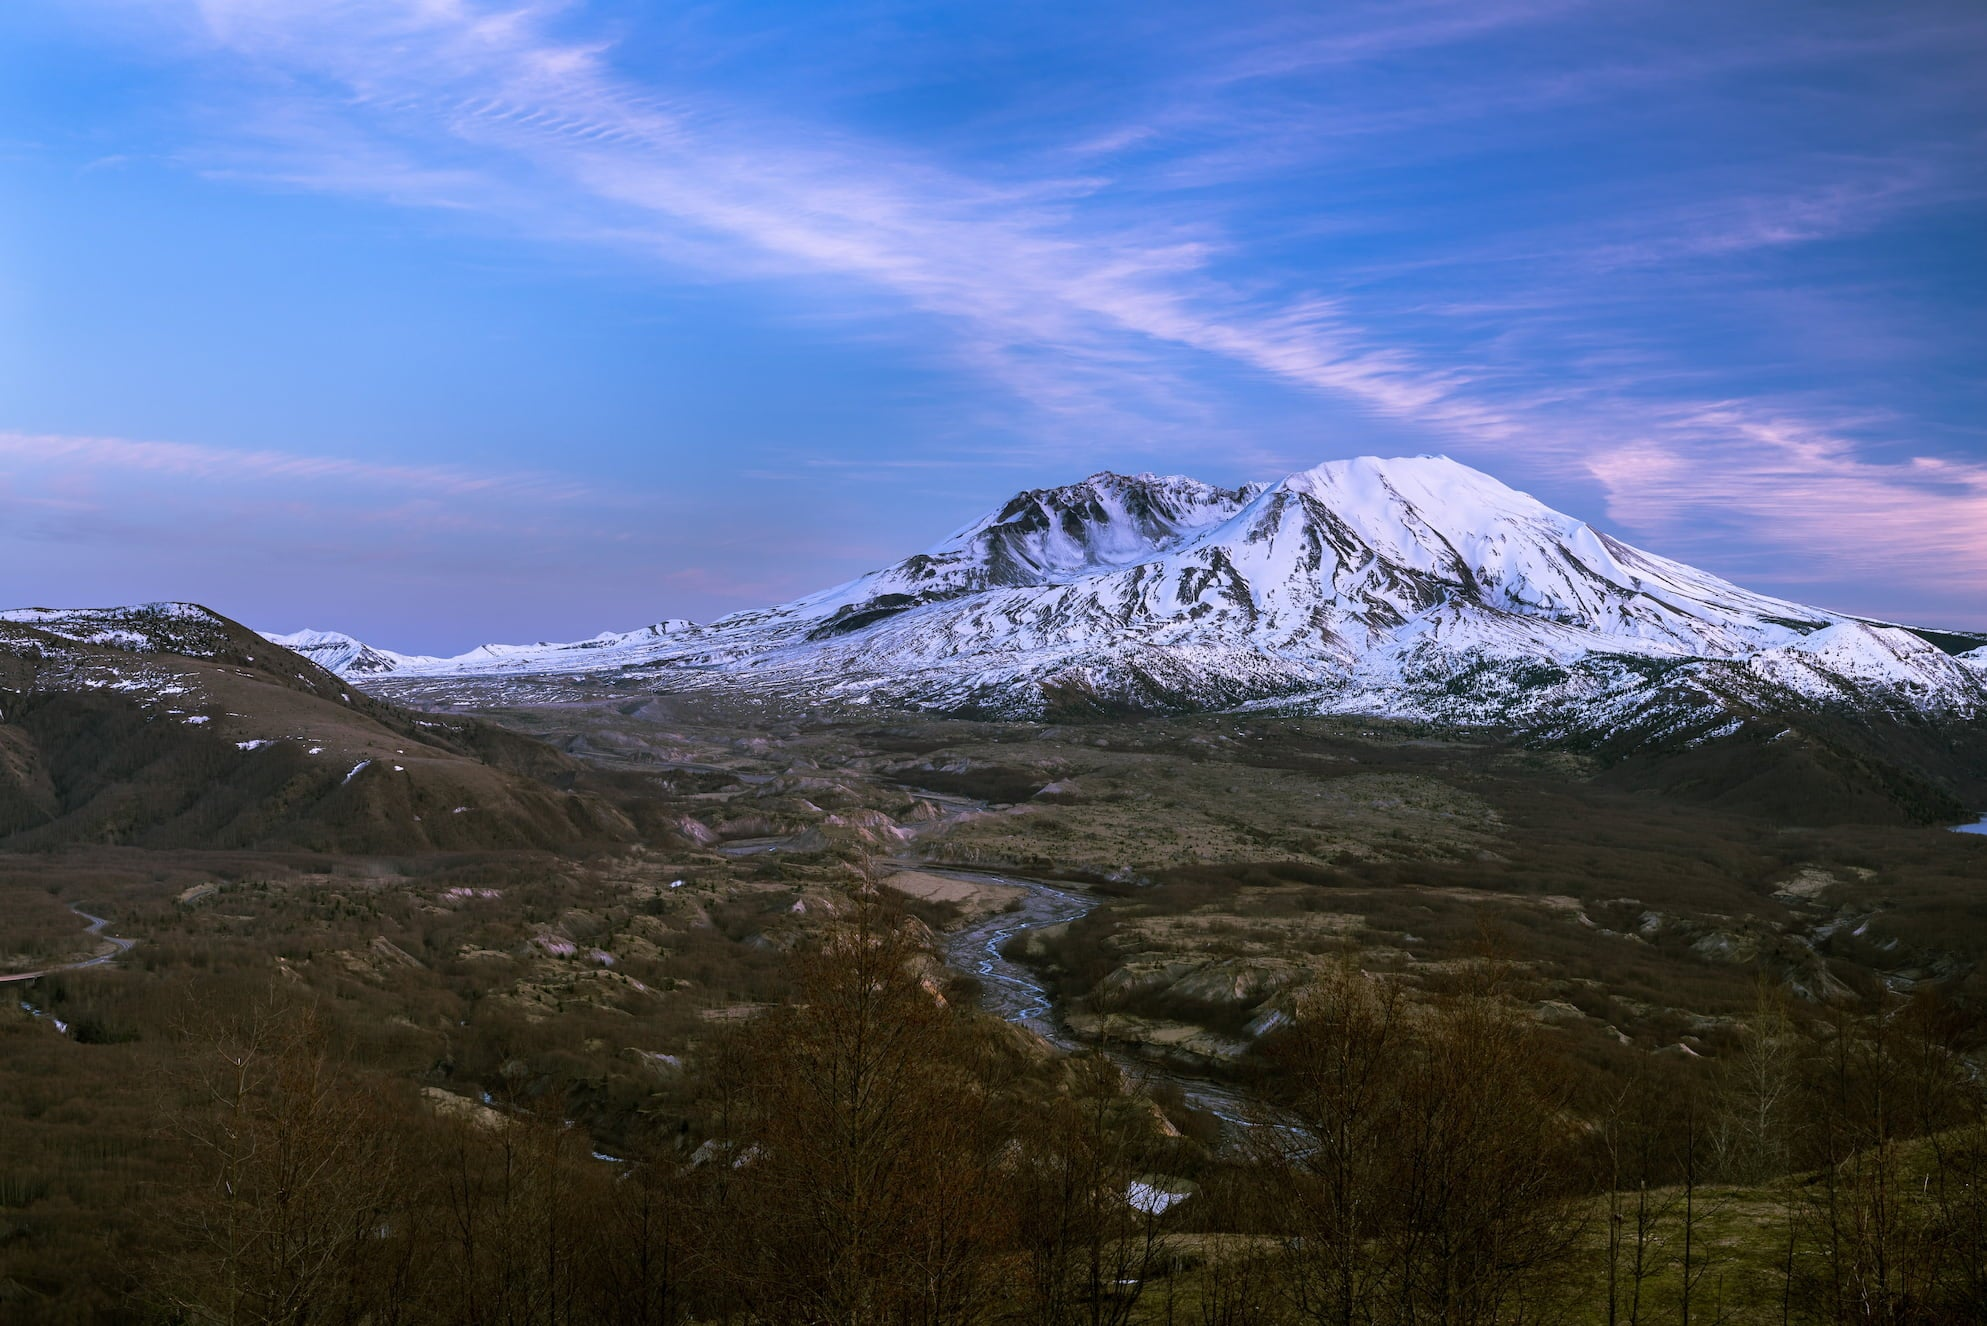 Mt St. Helens at dusk.